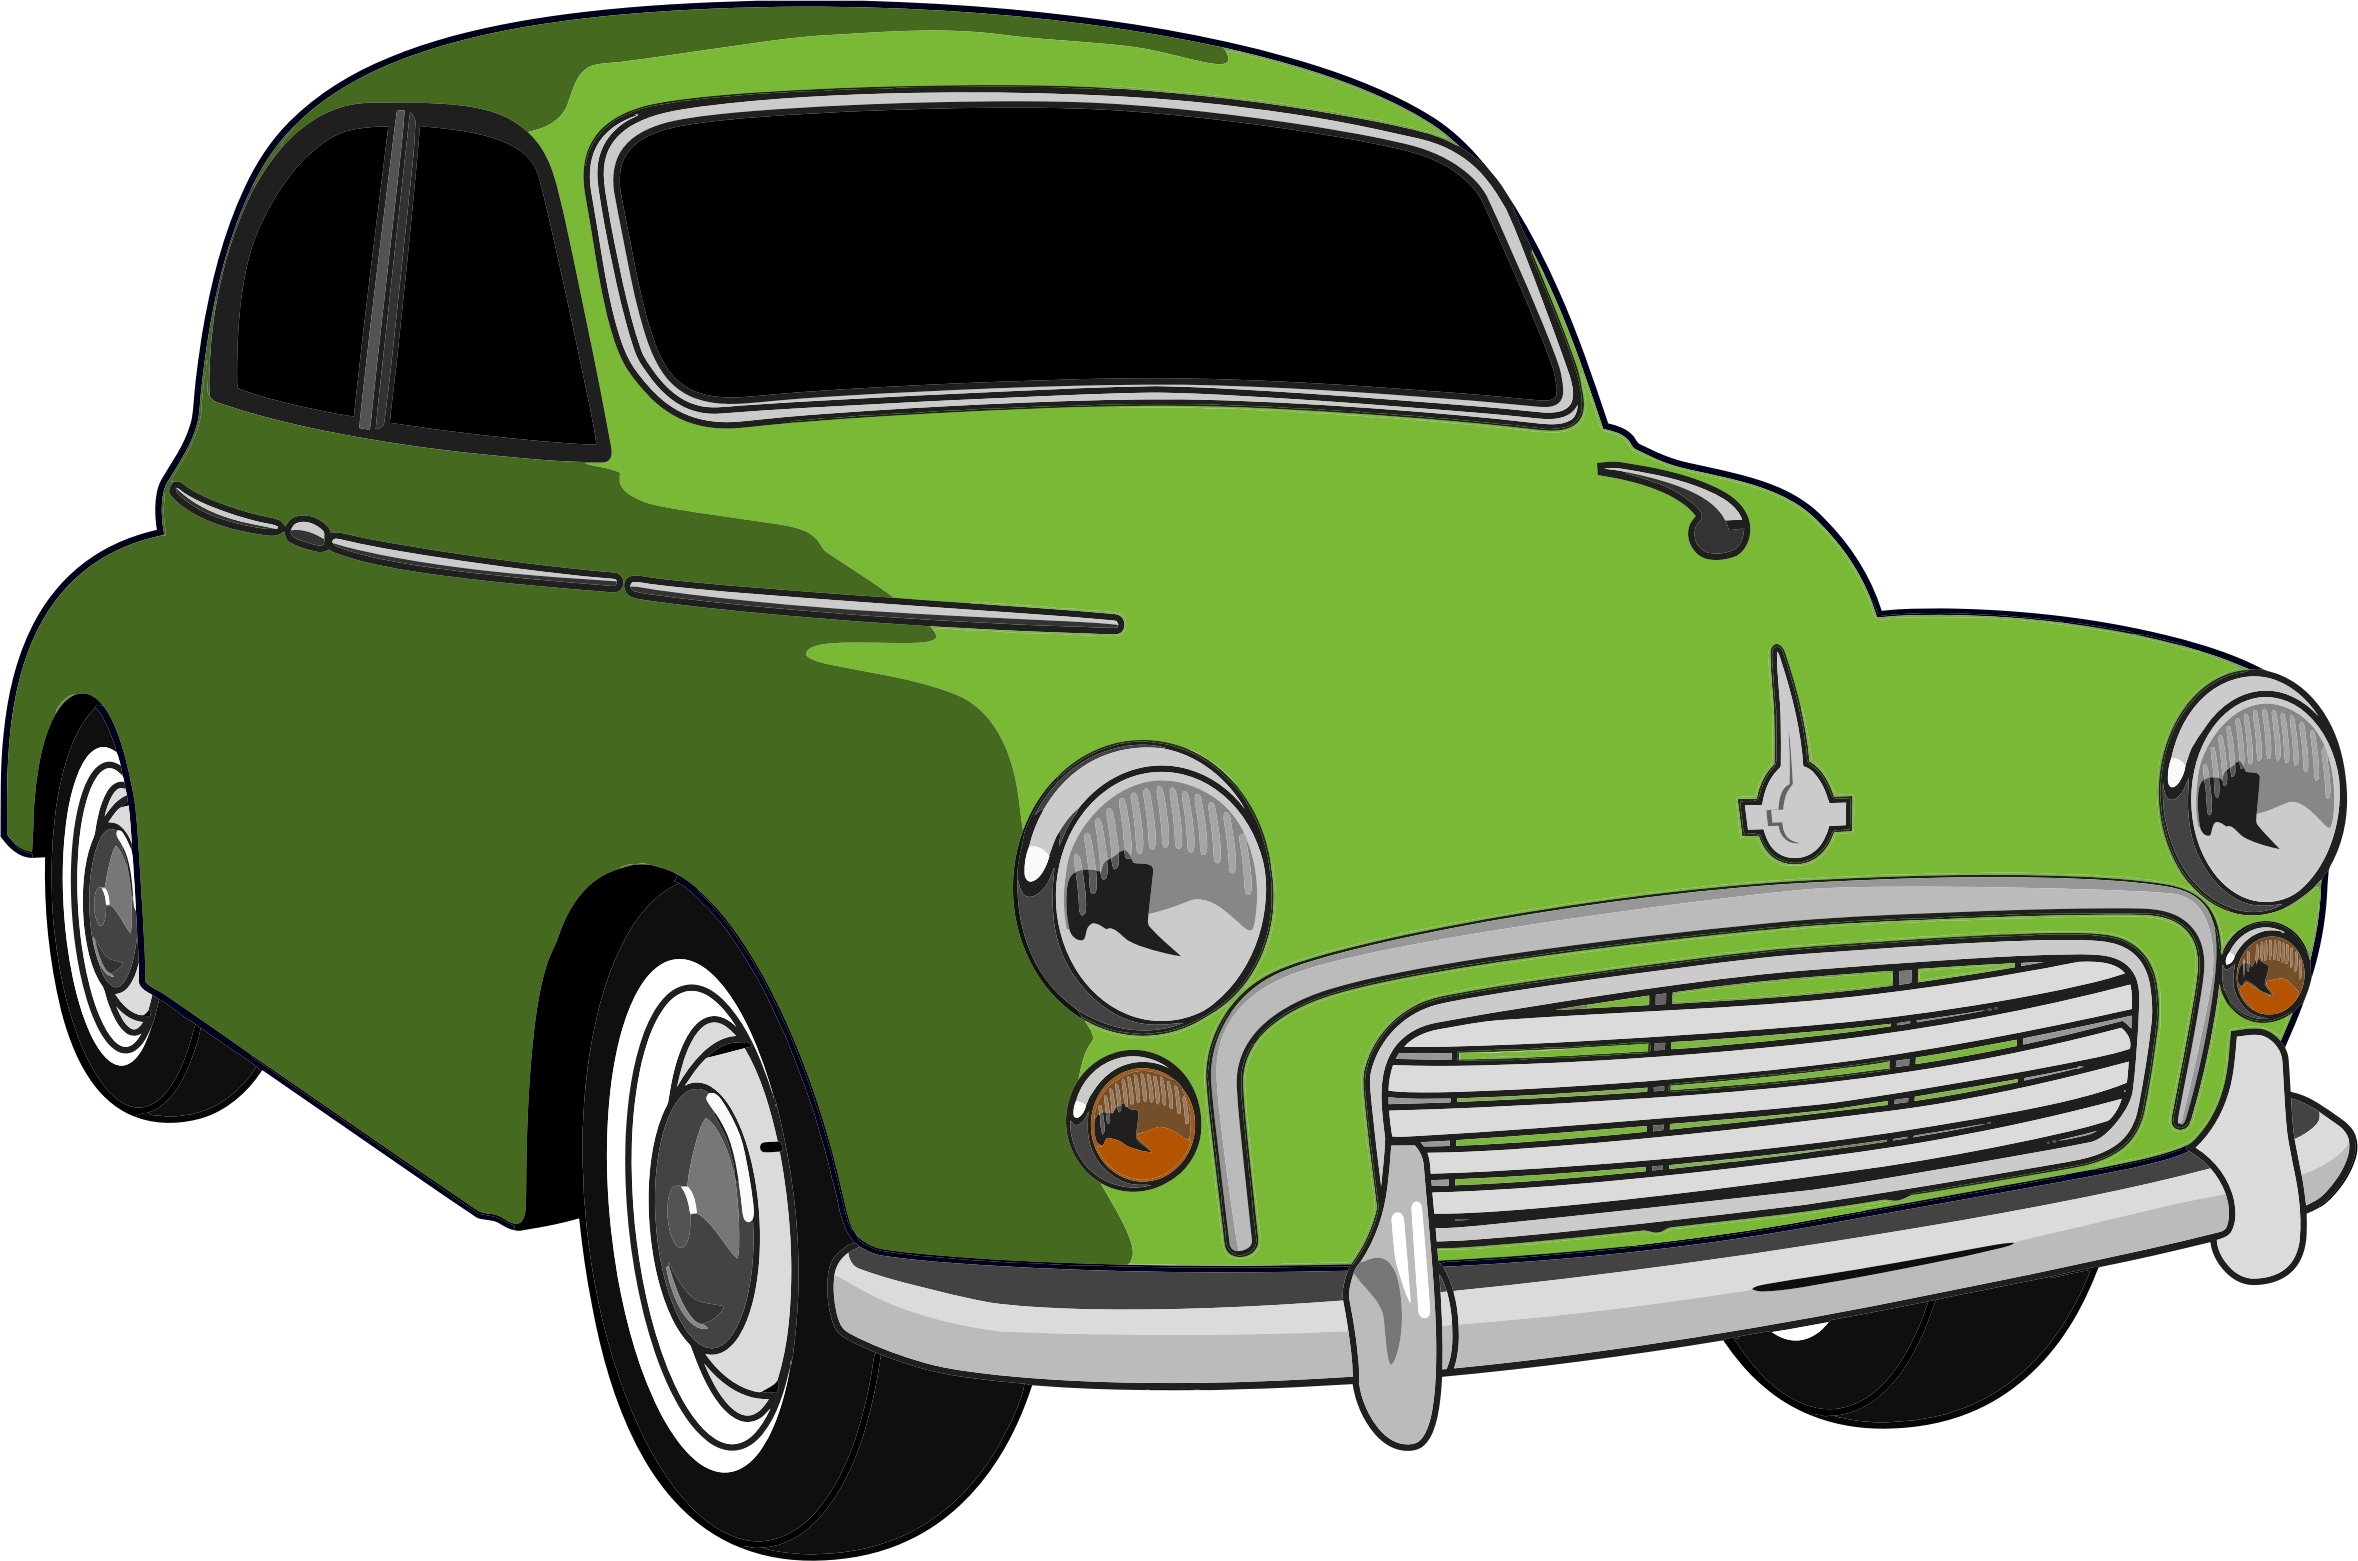 Car ride clipart royalty free Car clipart big car - Pencil and in color car clipart big car royalty free